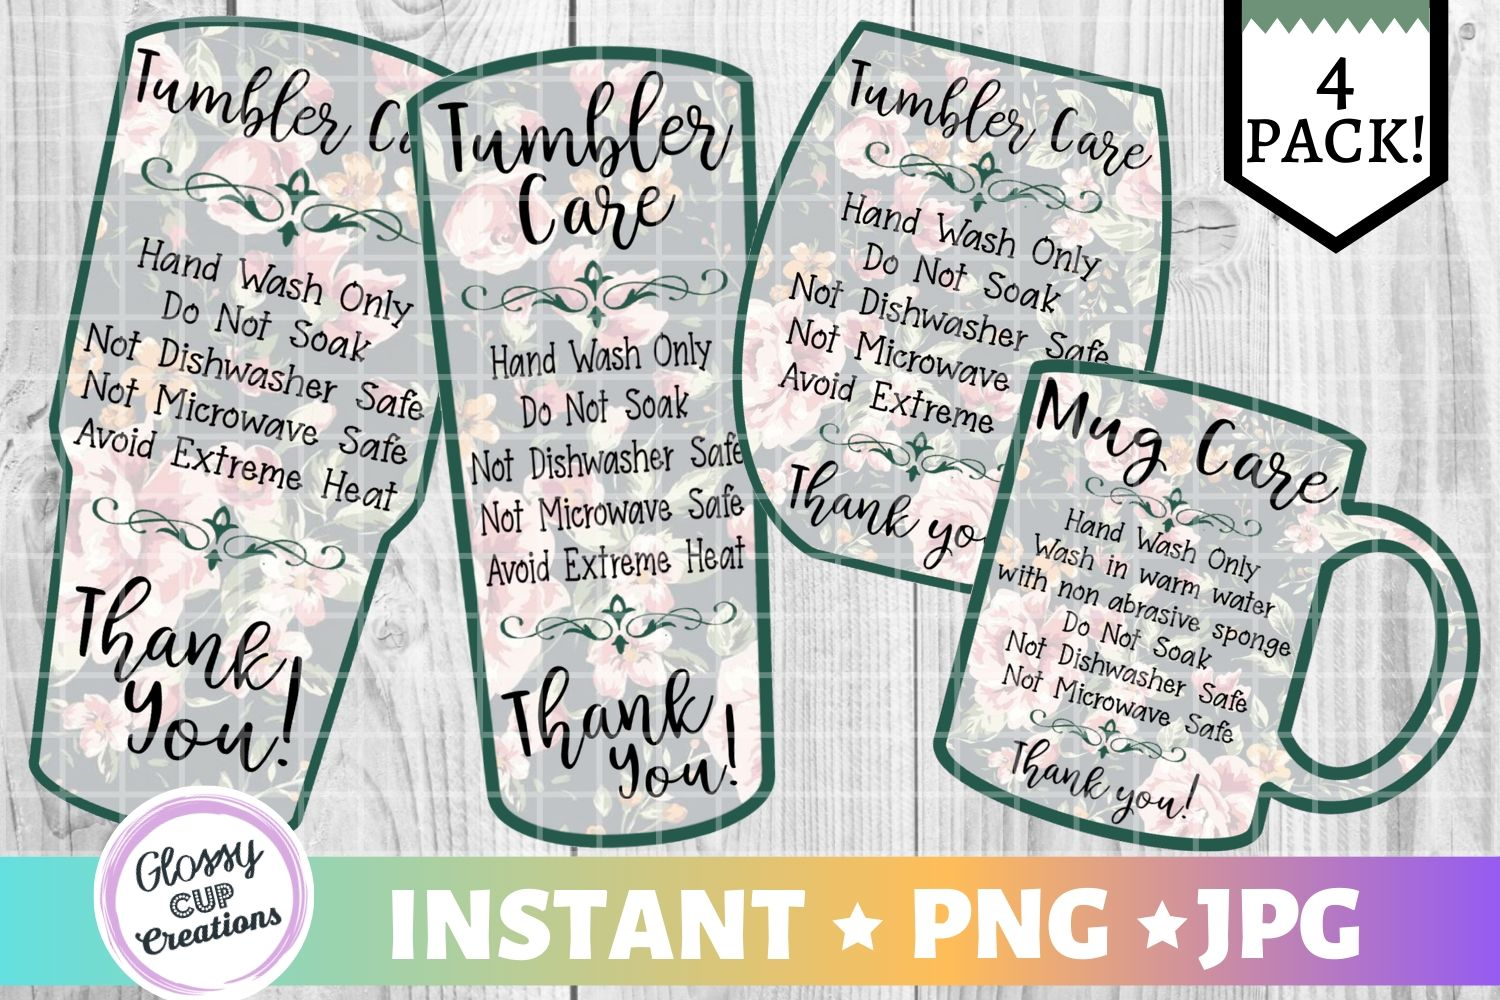 Download Free Tumbler Care Cards Green Floral Graphic By Suzannecornejo for Cricut Explore, Silhouette and other cutting machines.